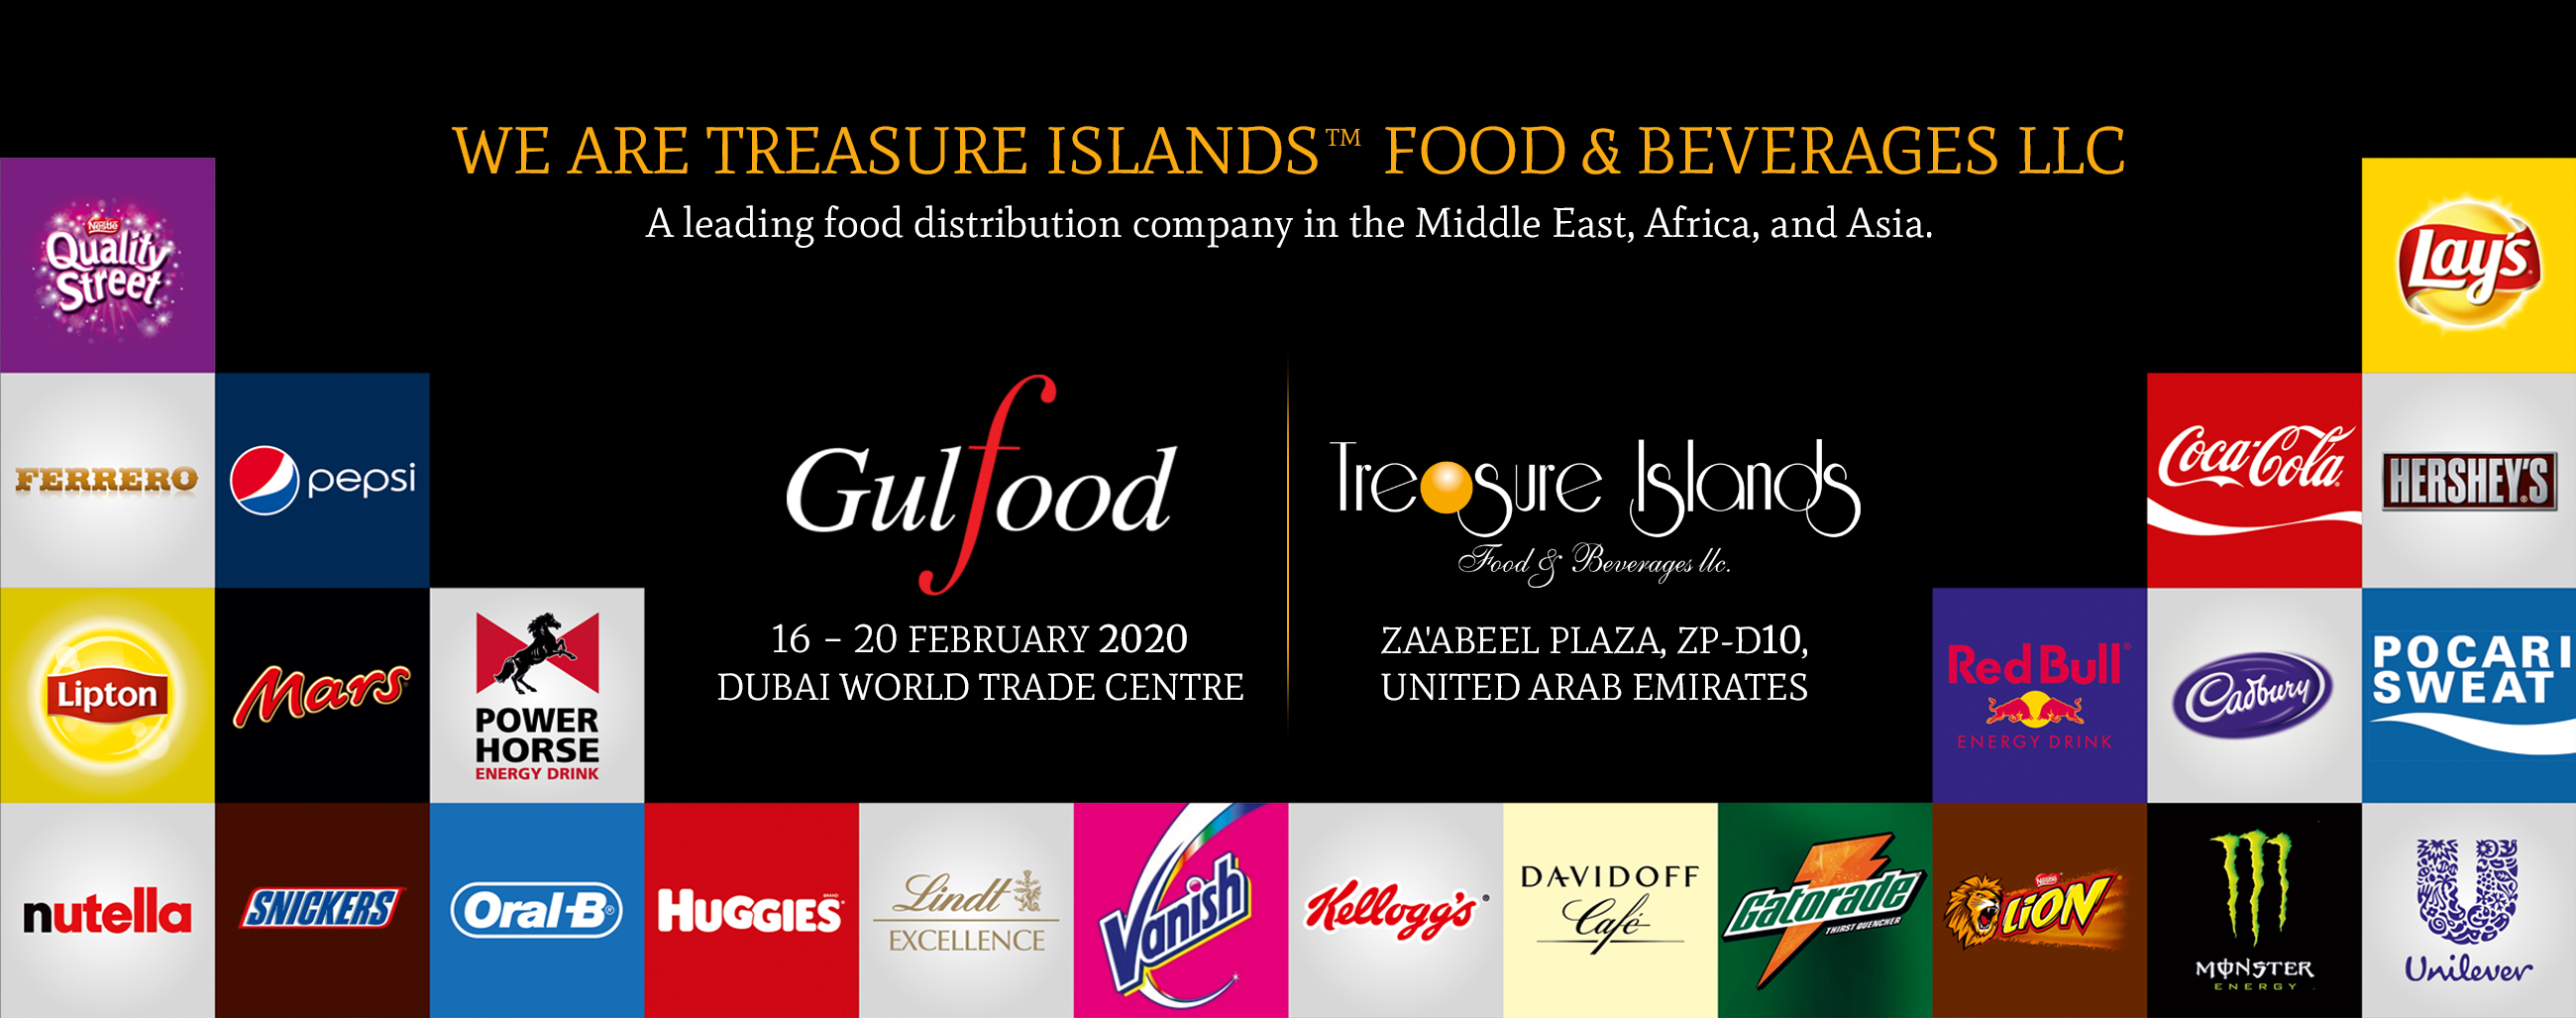 Food & Beverage Distributors in Dubai